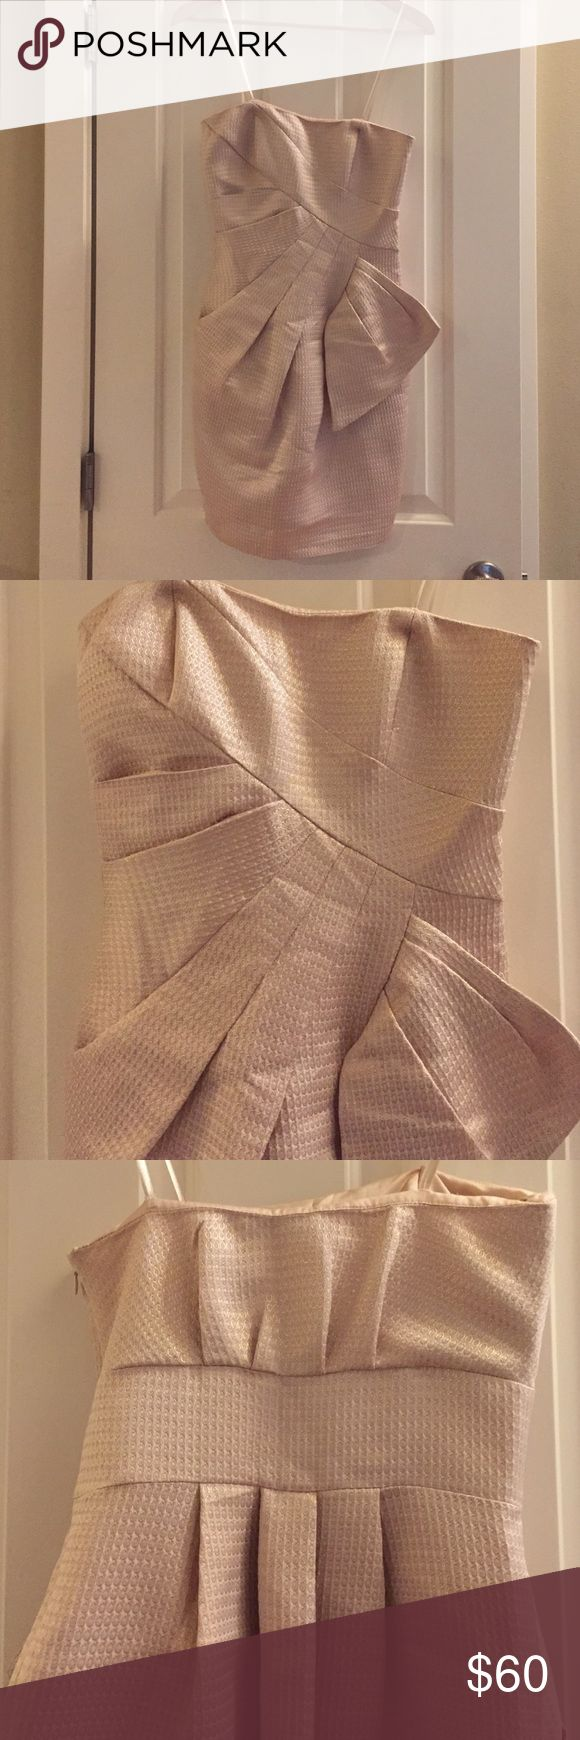 BCBG rose champagne metallic cocktail dress sz2 Beautiful jacquard strapless dress from BCBG's Max and Cleo. Such a pretty color with pleated details and best of all, pockets! Great for prom, cocktail party or even NEW year's Eve!! BCBG Dresses Strapless